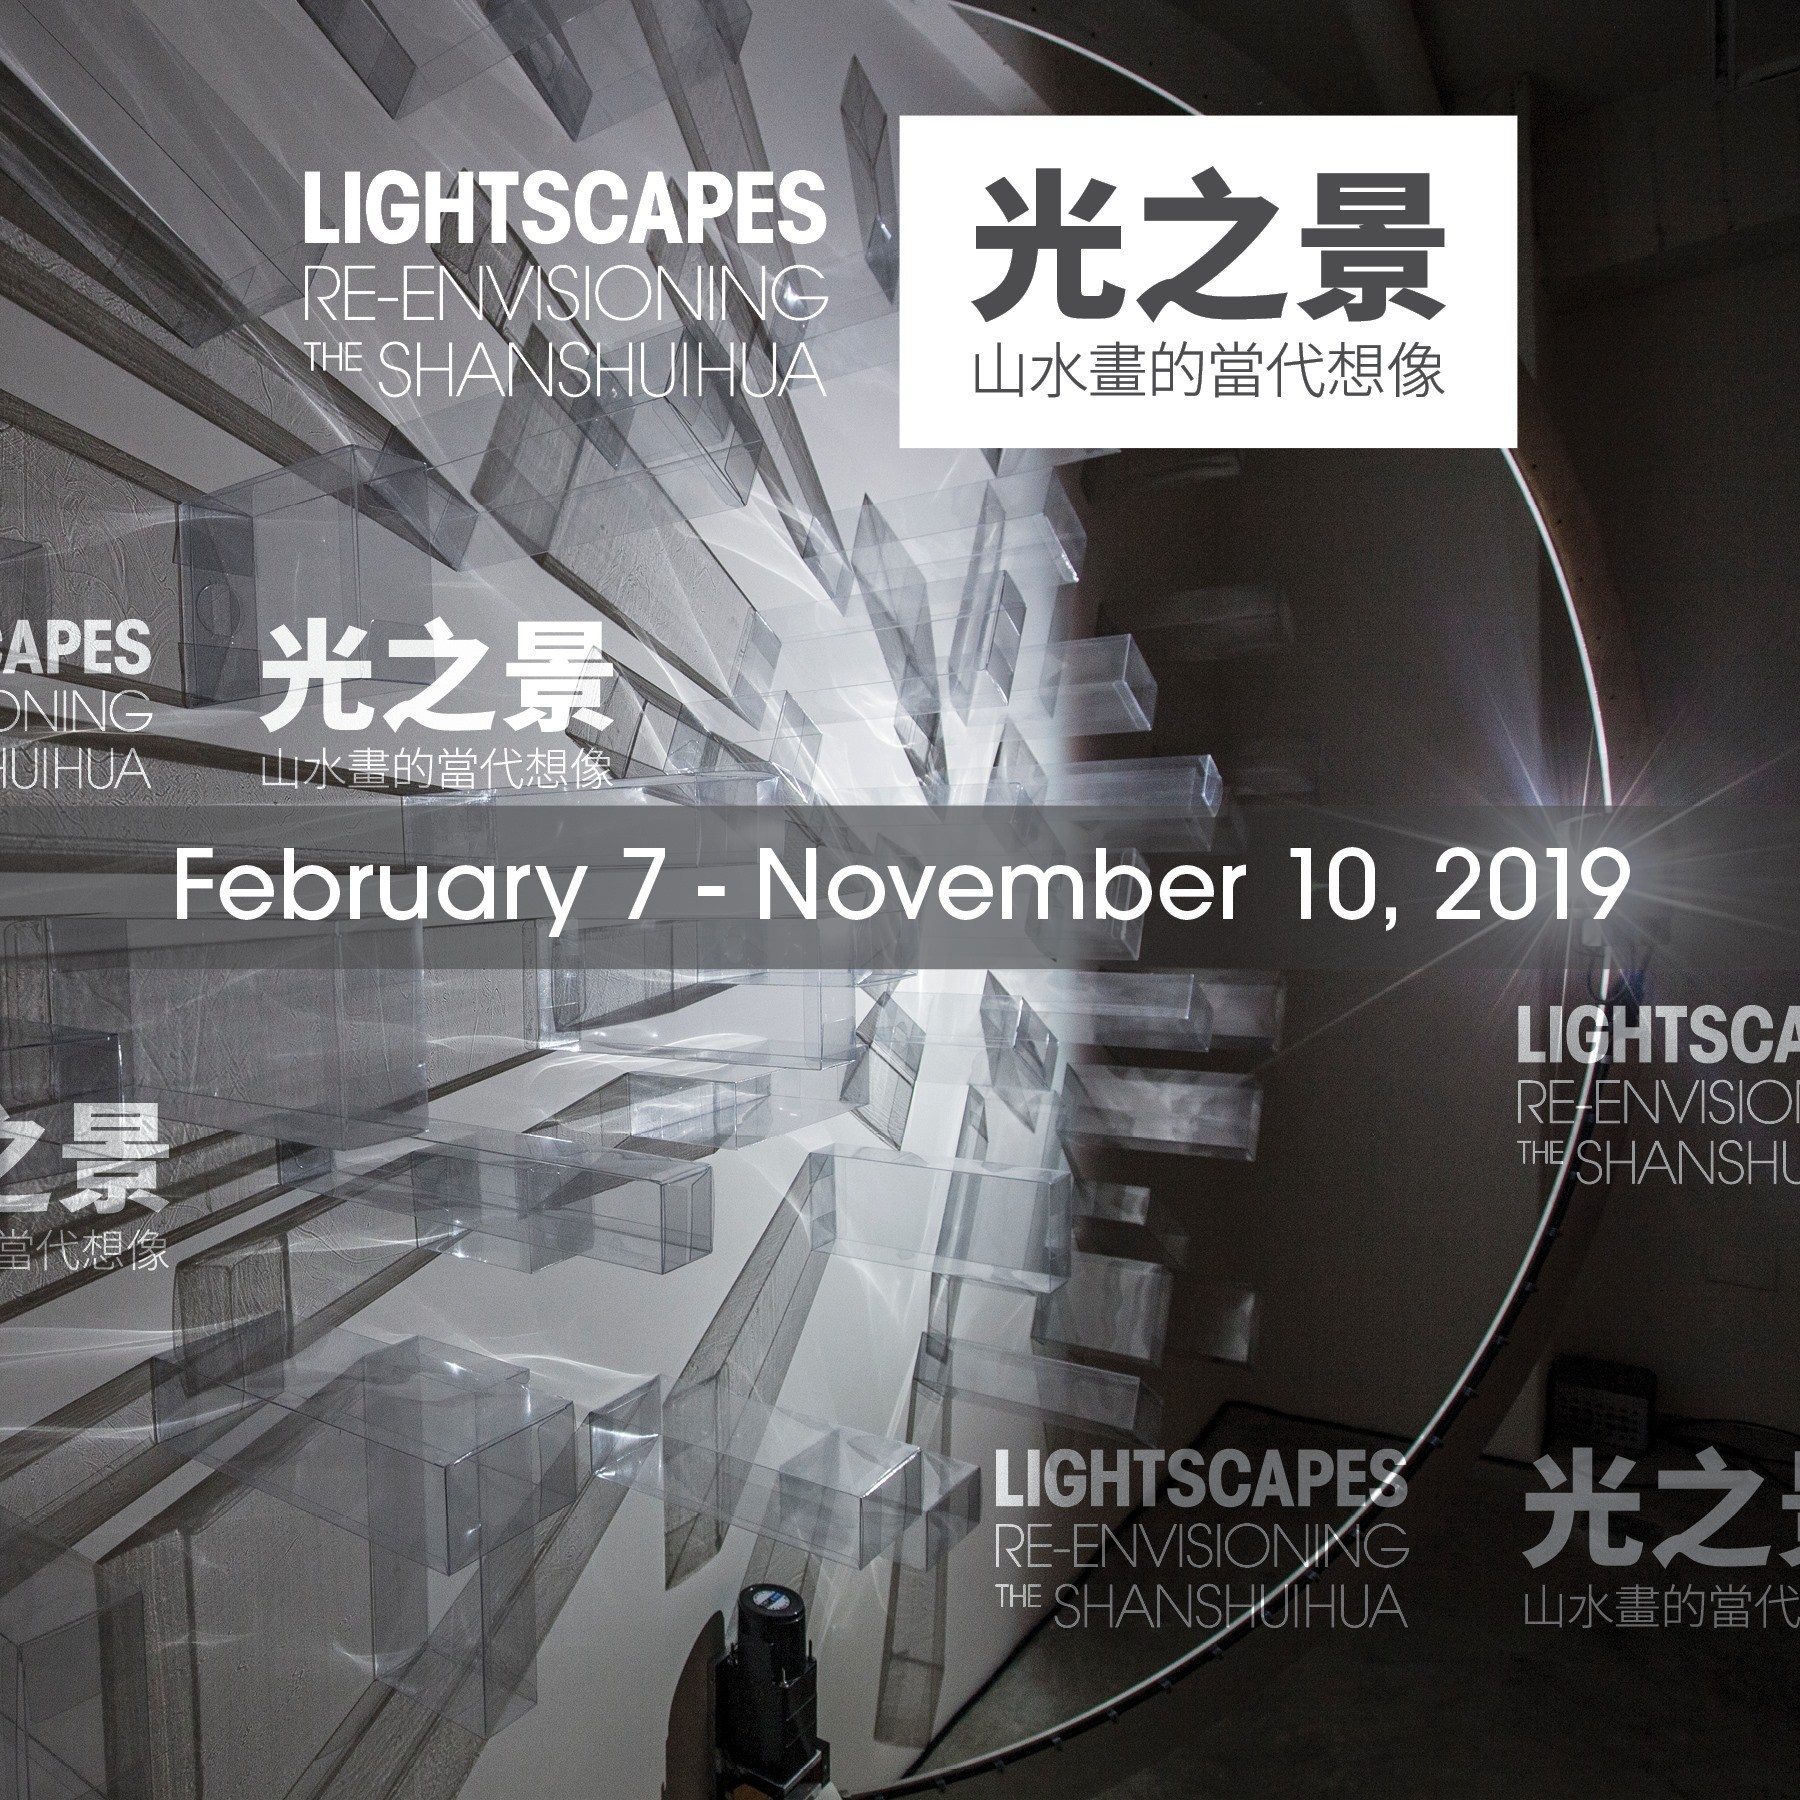 Lightscapes Re-envisioning the Shanshuihua